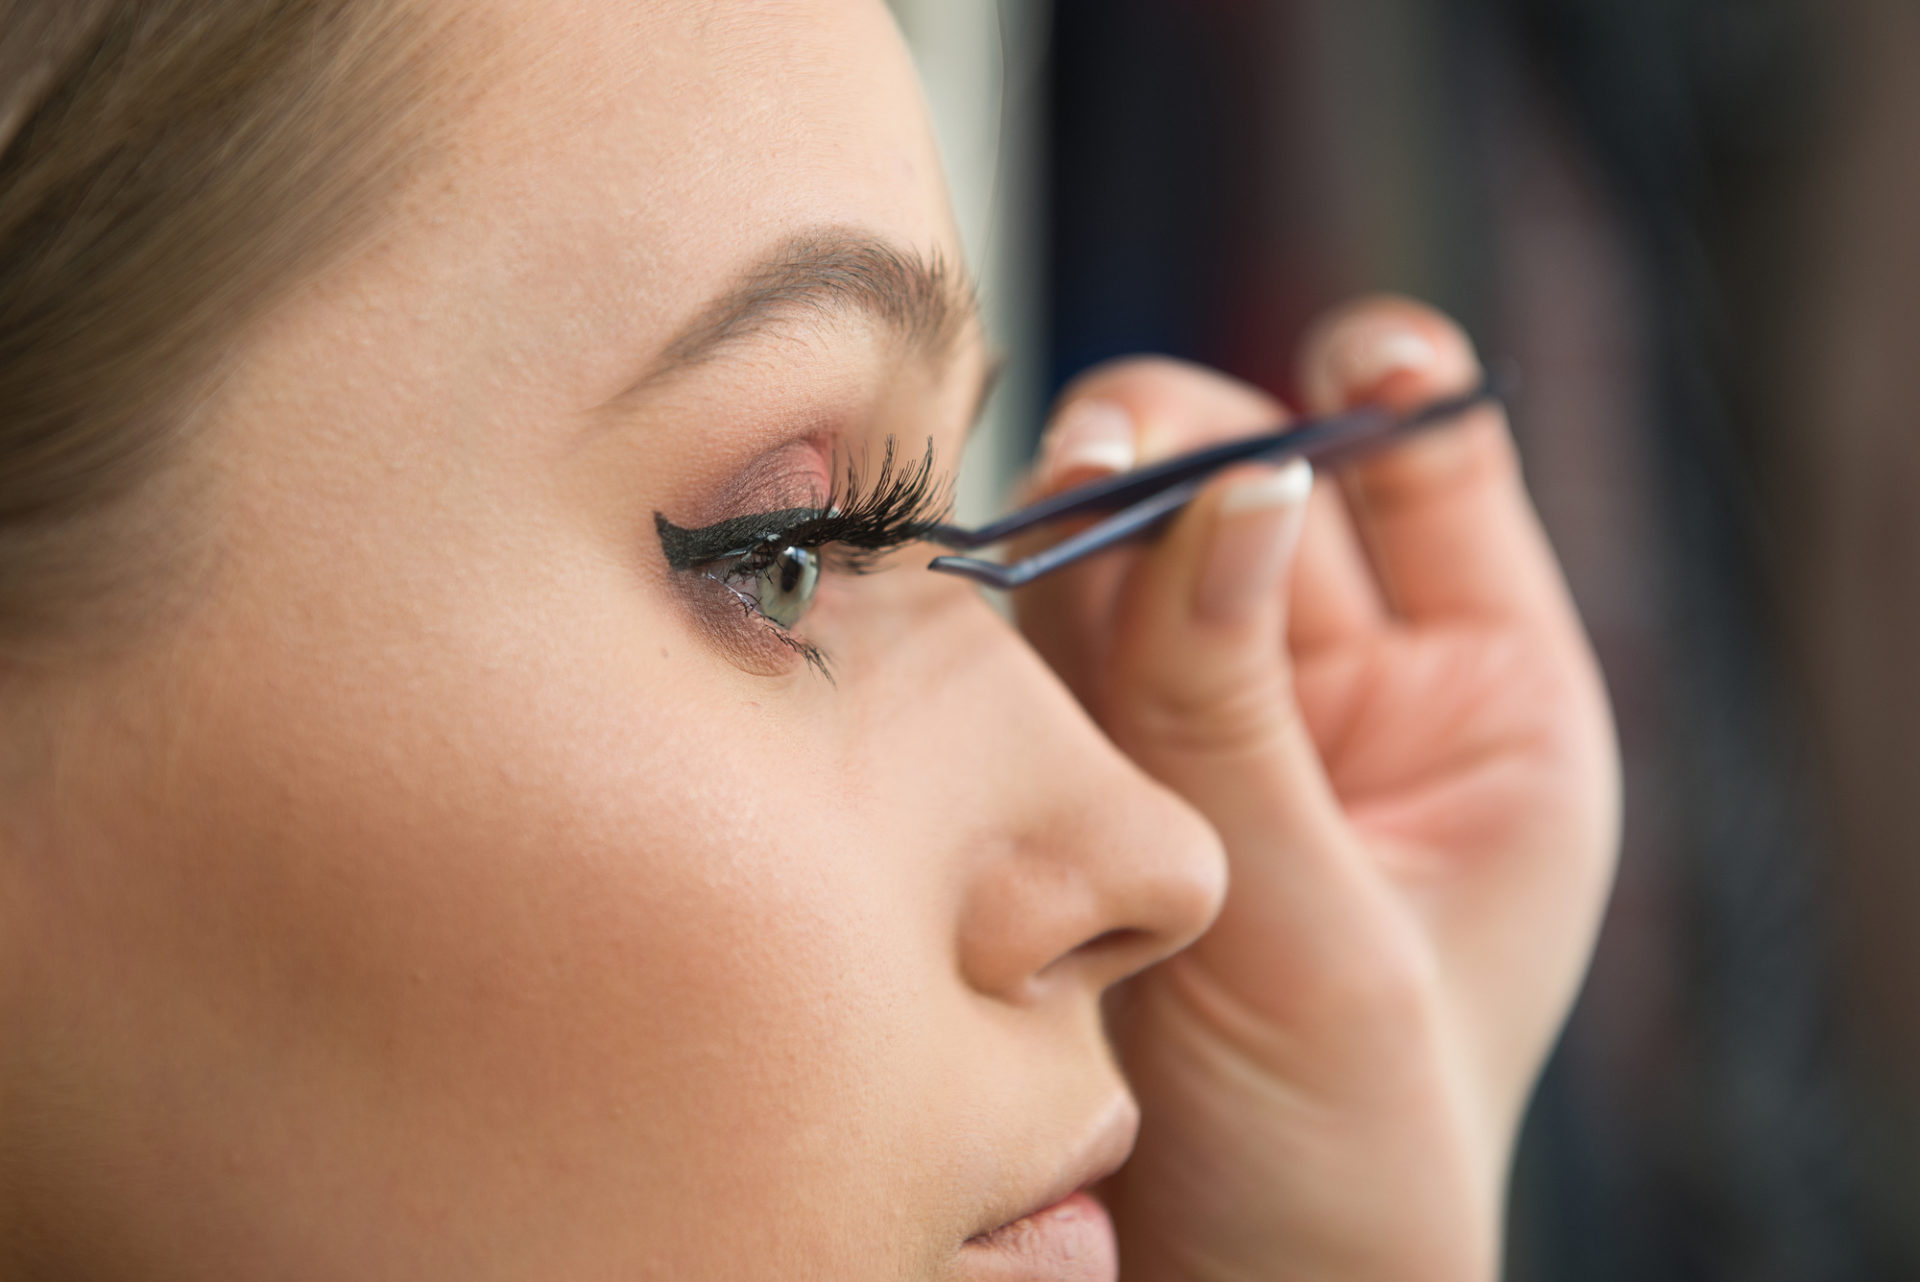 Fake Eyelashes 101 Everything You Need To Know About Falsies